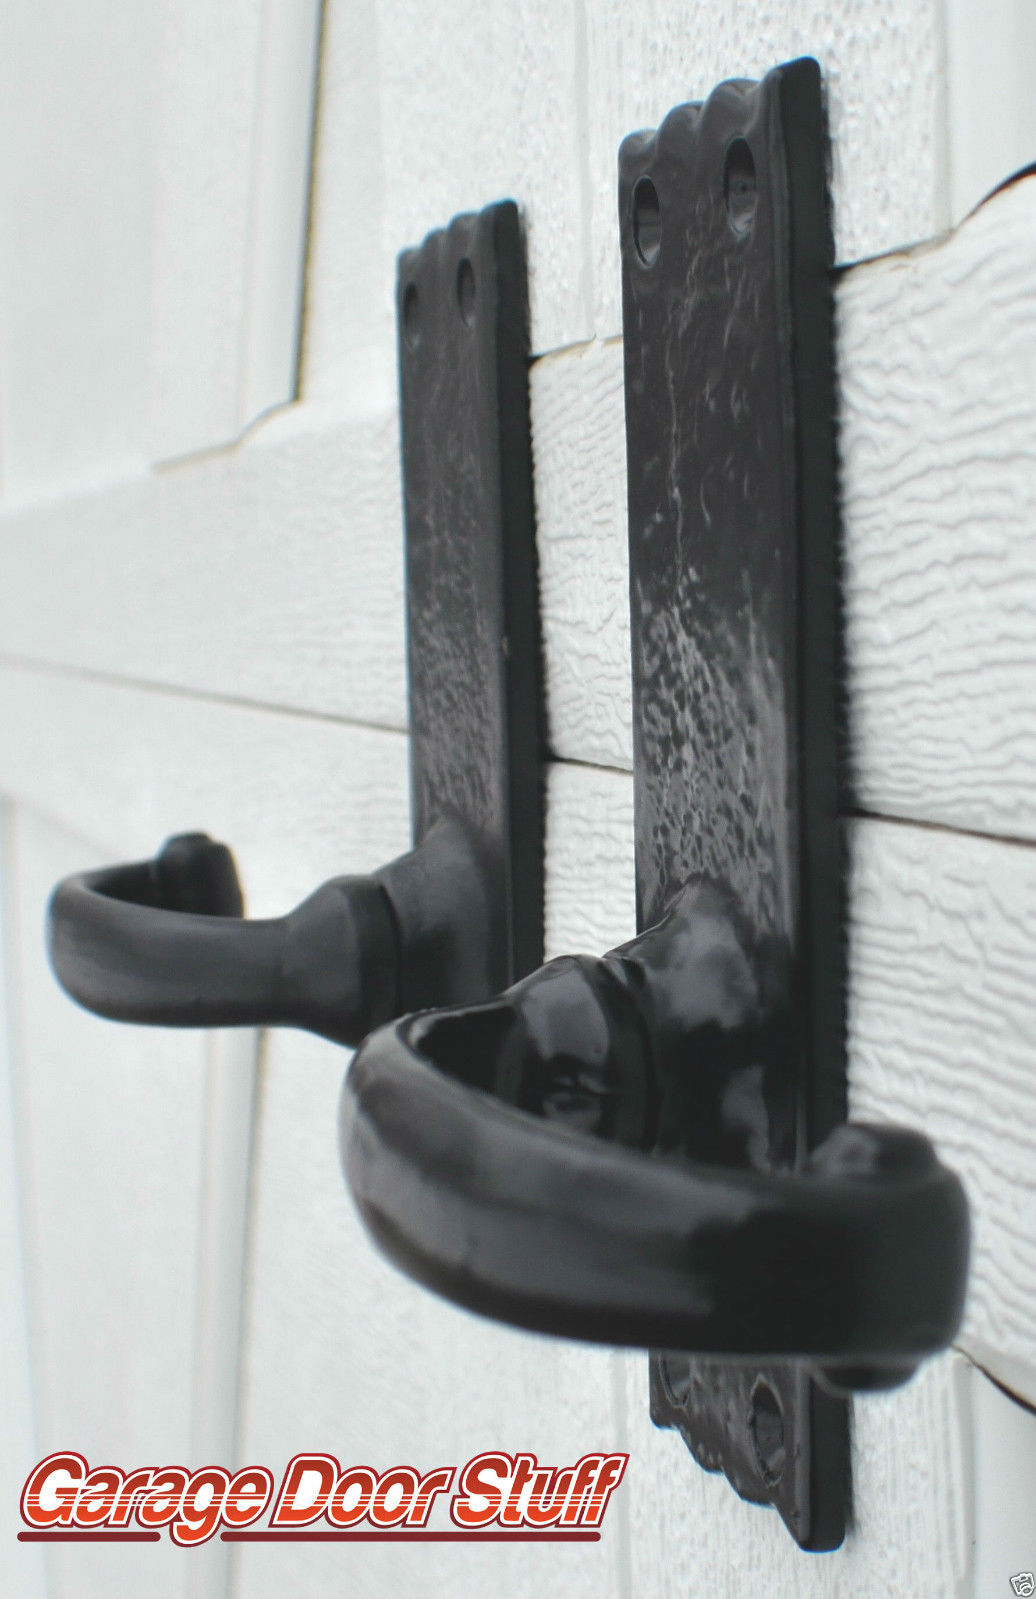 Carriage House Garage Door Decorative Hardware